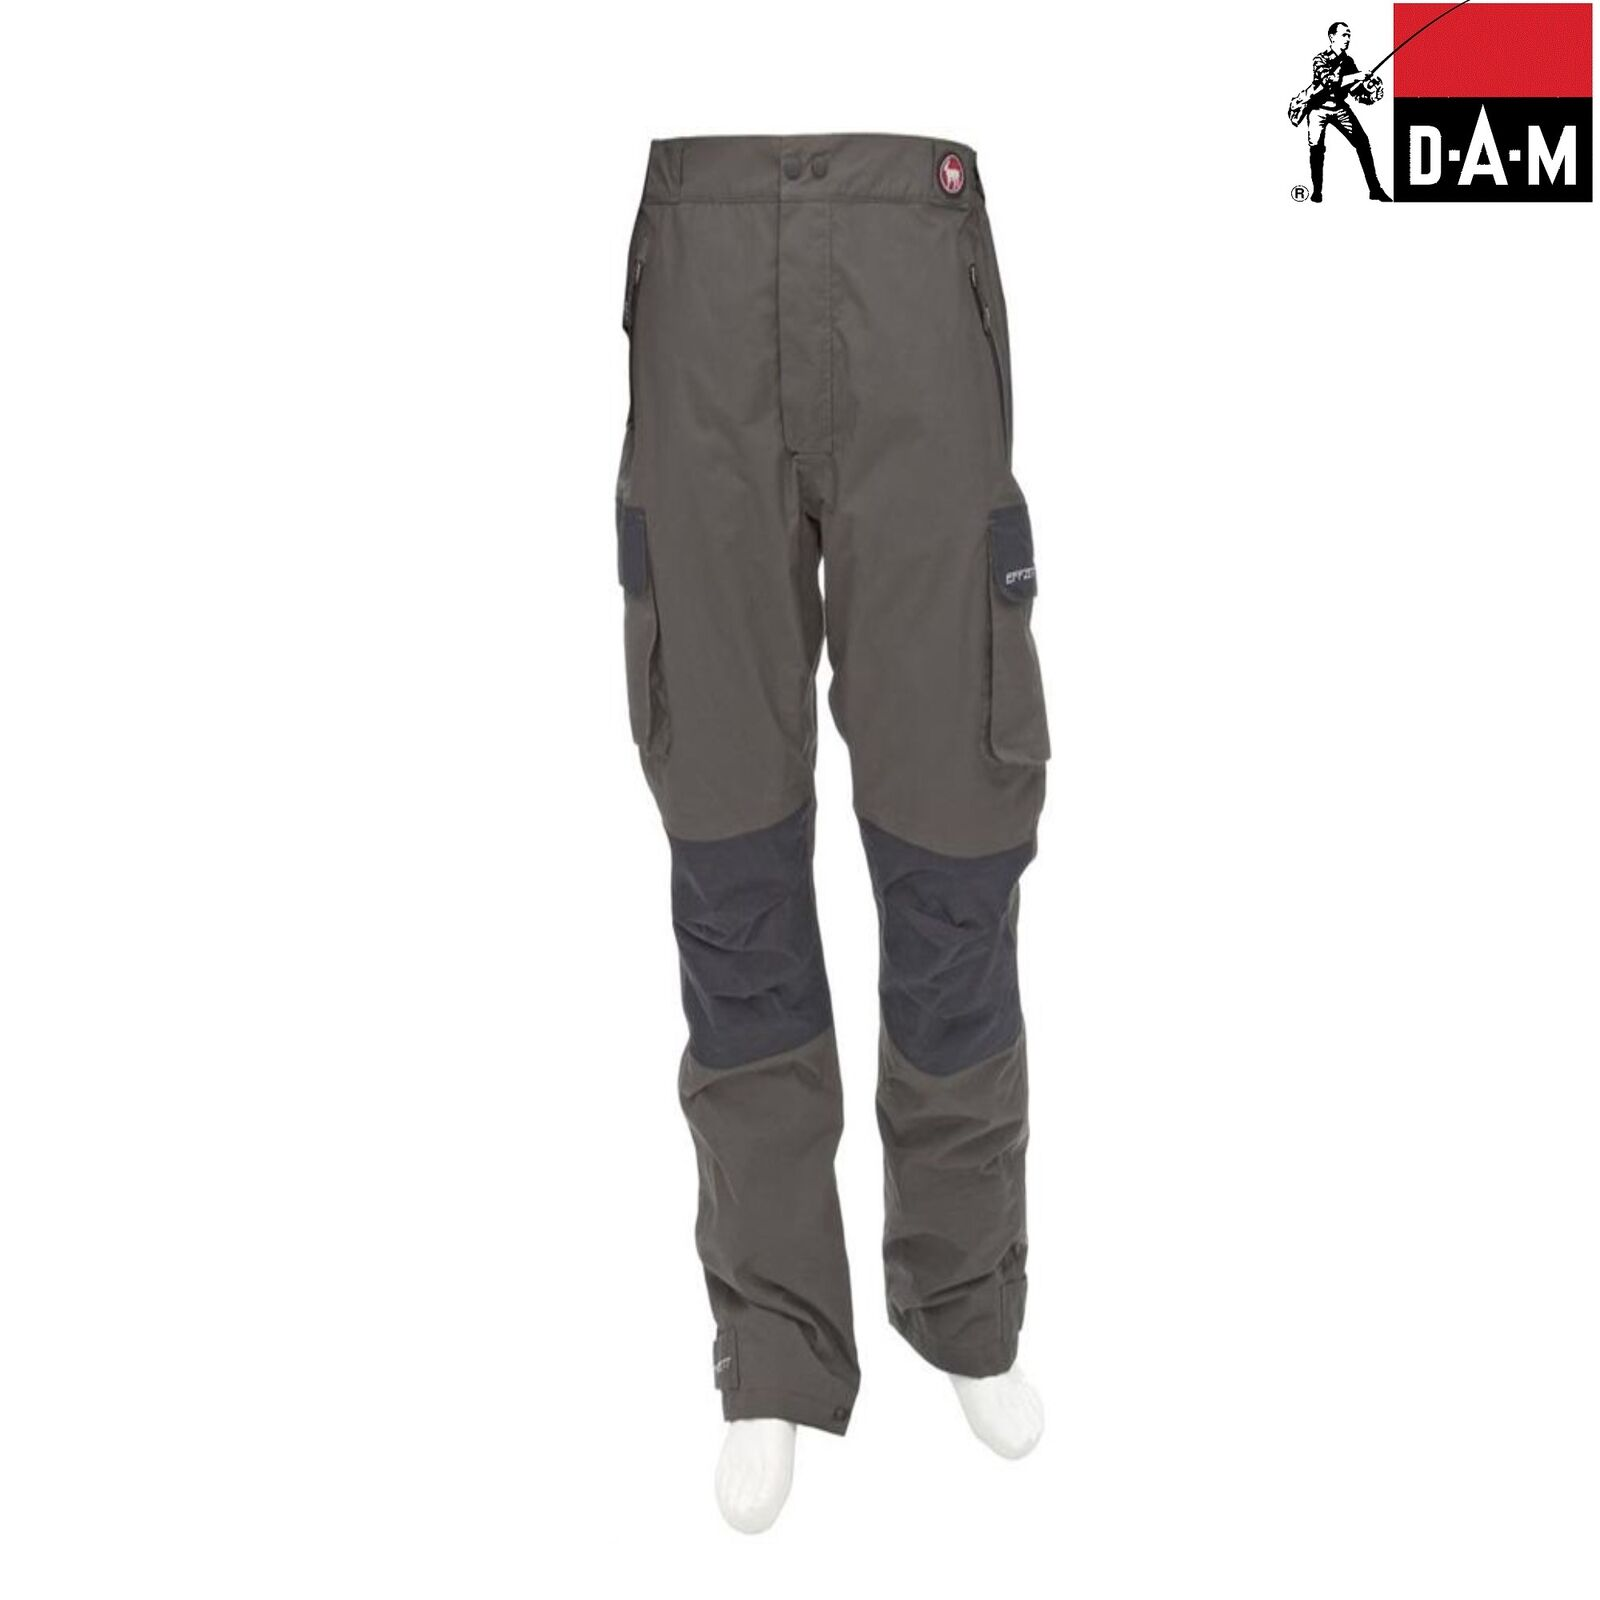 DAM FZ Technical All-Round Trousers | 10-Layer | 100% Waterproof | 100% Nylon